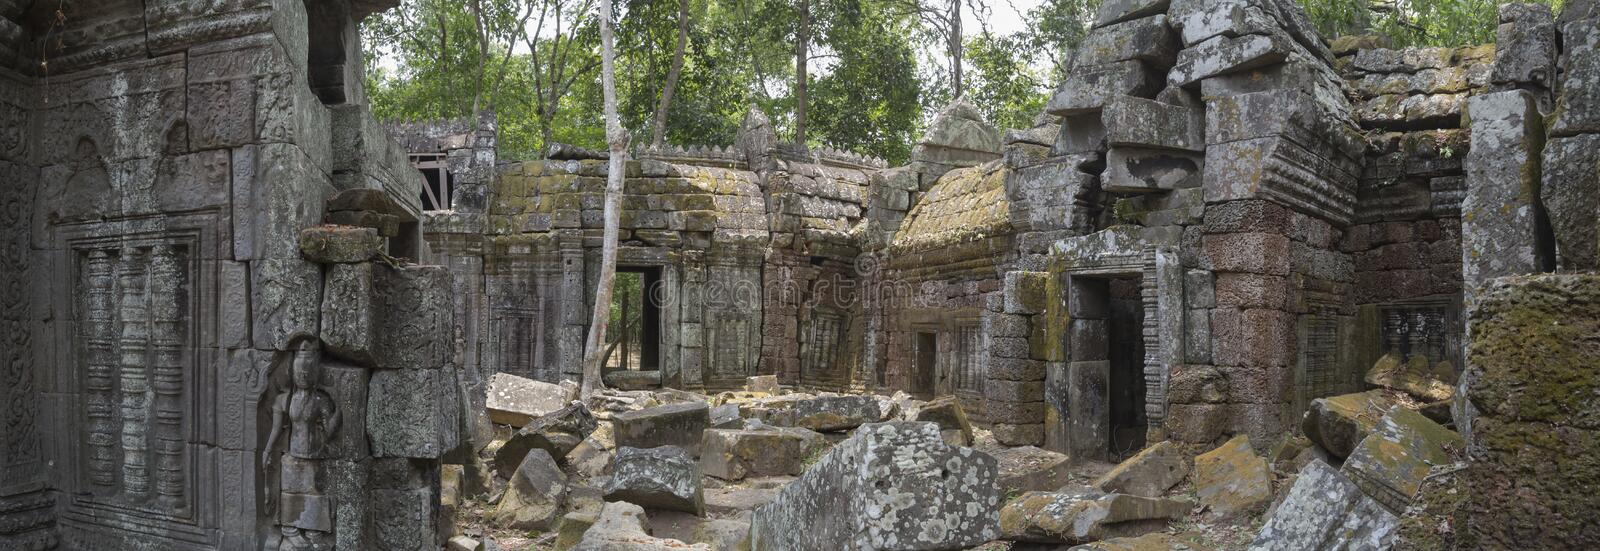 Ancient temple panoramic view royalty free stock photo